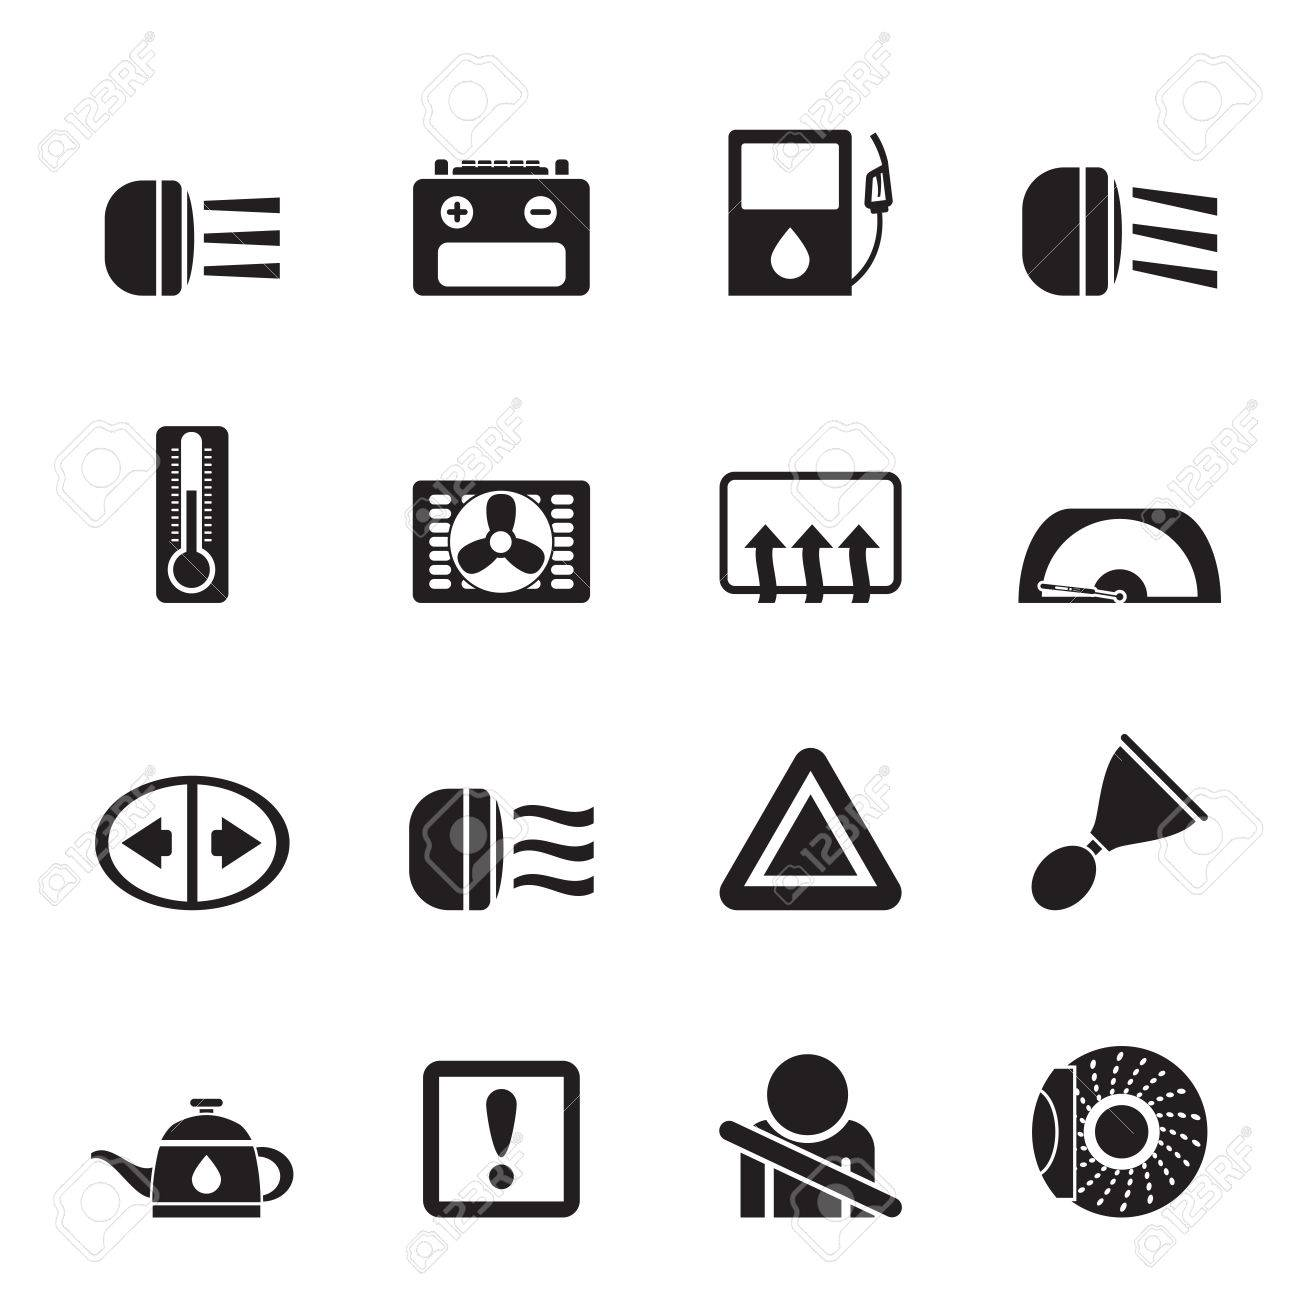 Silhouette Car Dashboard Icons Set Royalty Free Cliparts Vectors - Car image sign of dashboardcar dashboard icons stock images royaltyfree imagesvectors